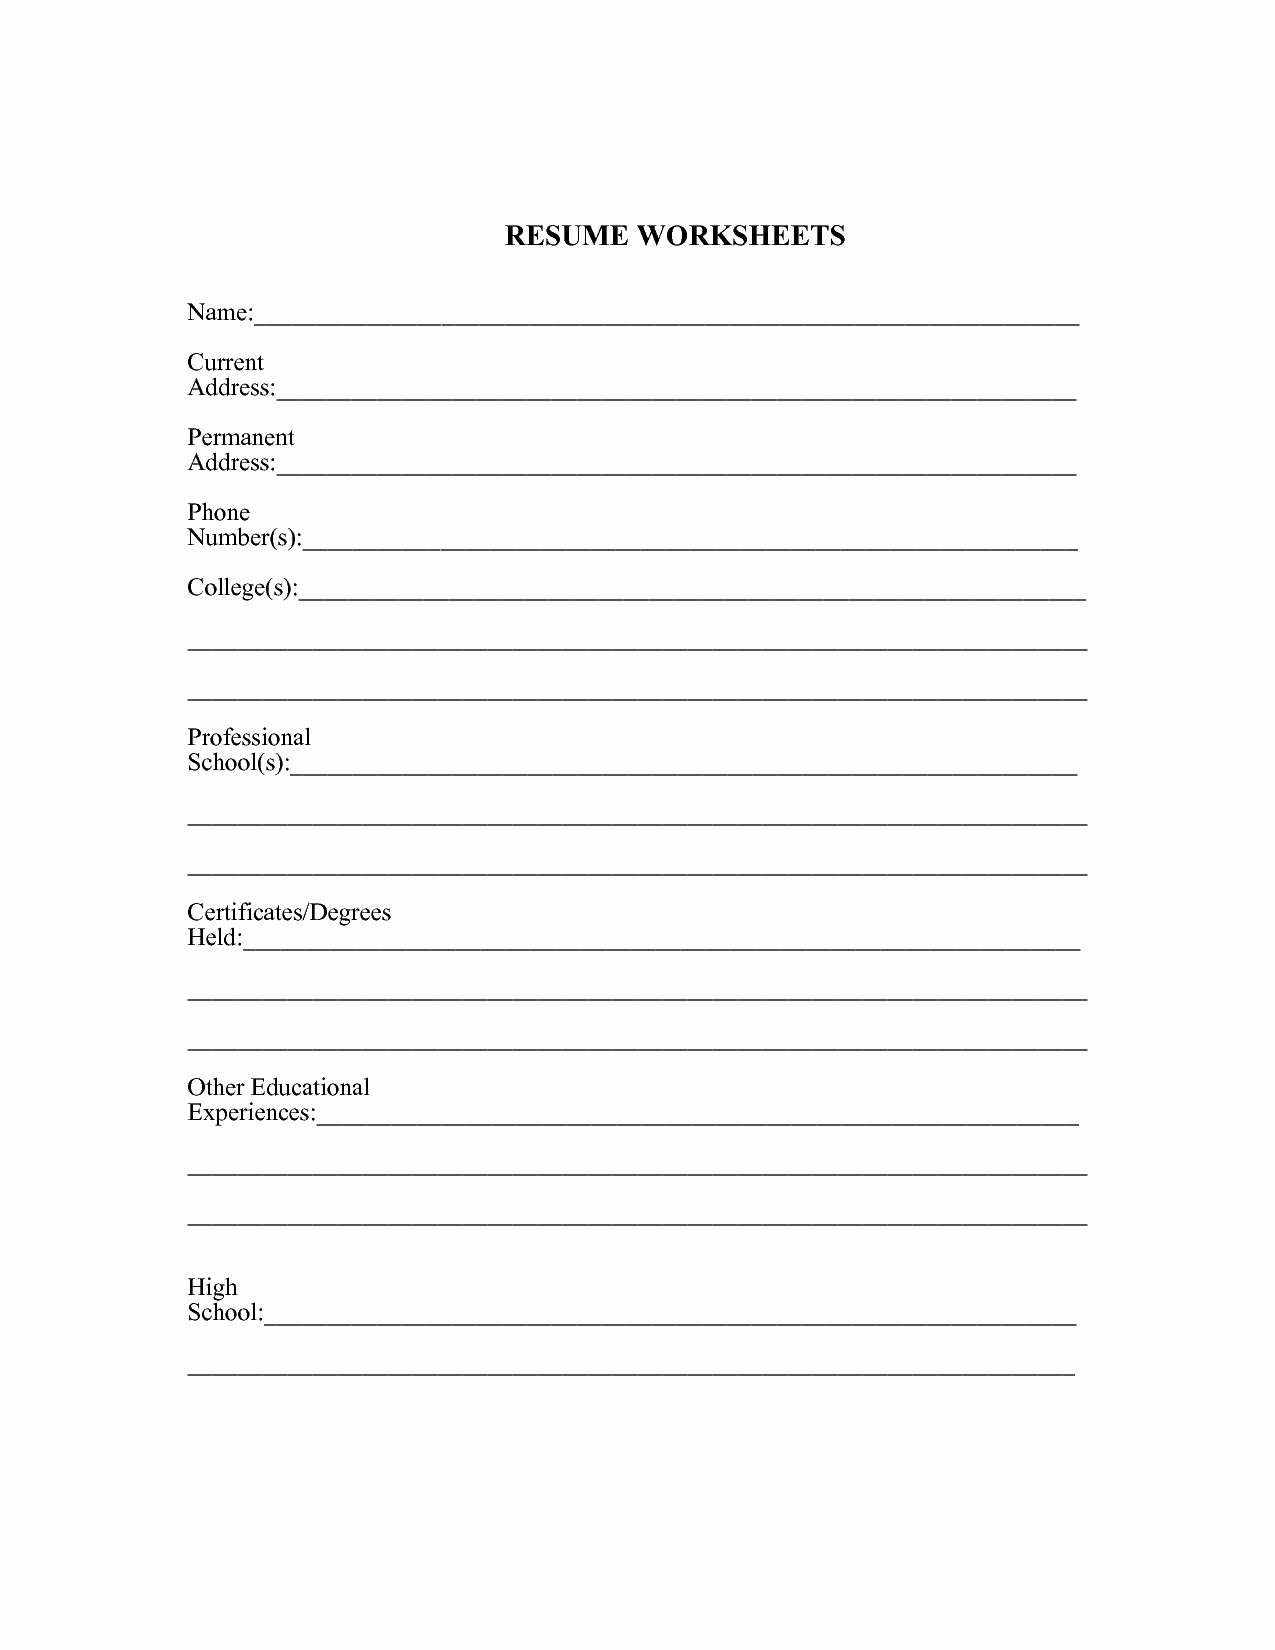 Resume Worksheet for Adults Best Of 17 Best Of Creating A Resume Worksheet Fill In